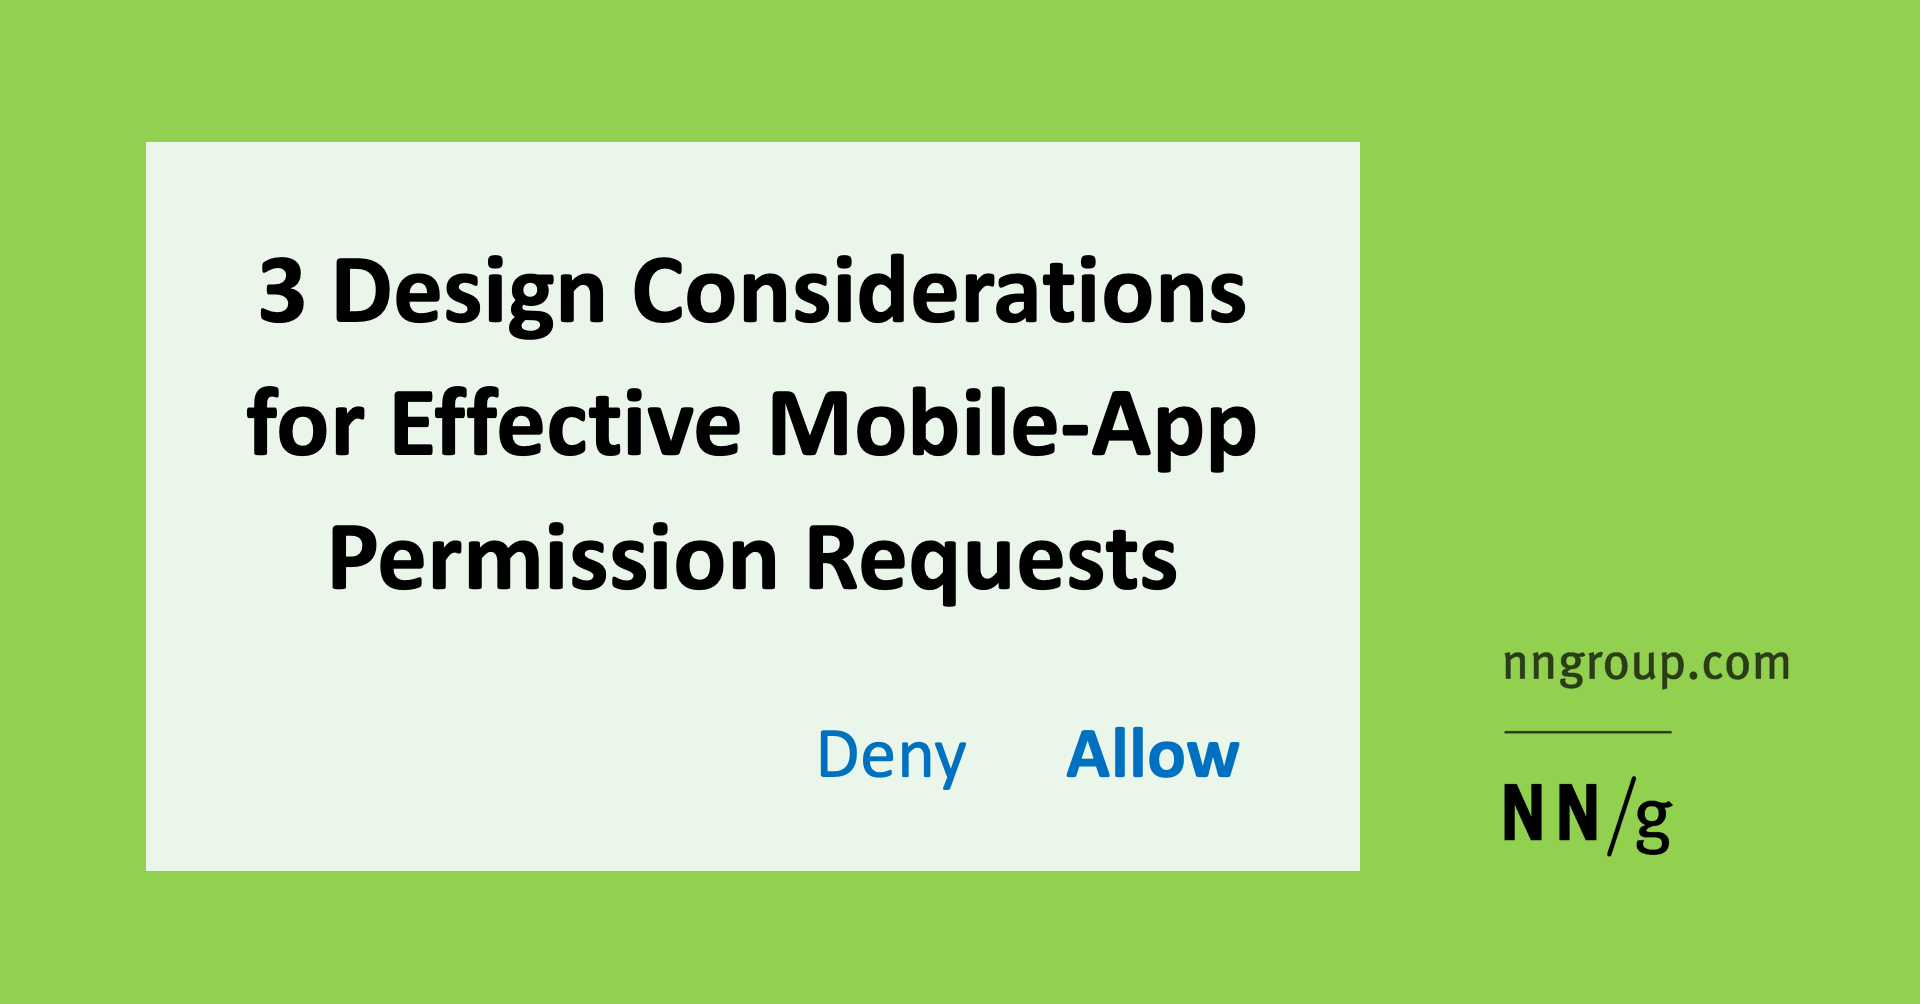 3 Design Considerations for Effective Mobile-App Permission